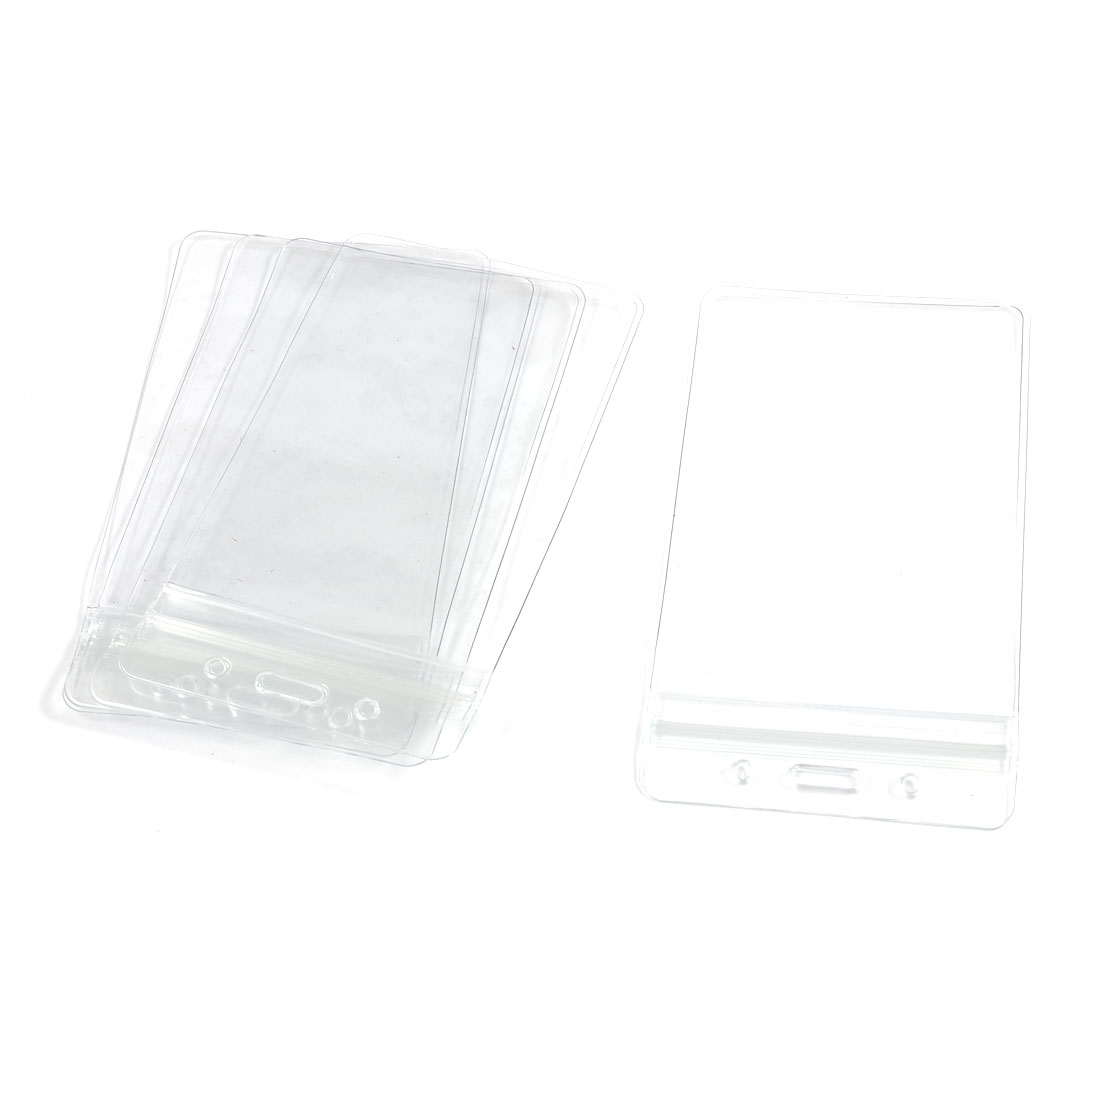 5 Pcs School Office Clear Plastic Vertical ID Card Badge Holders